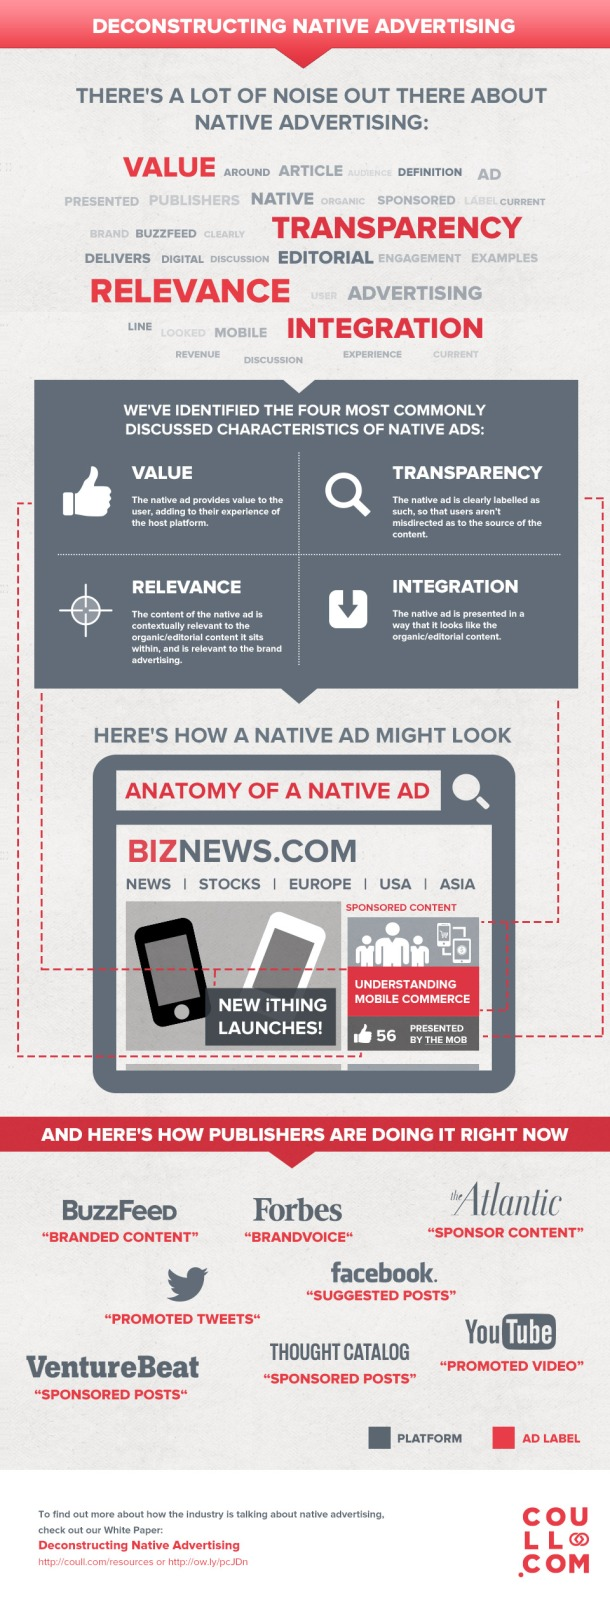 Deconstructing Native Advertising